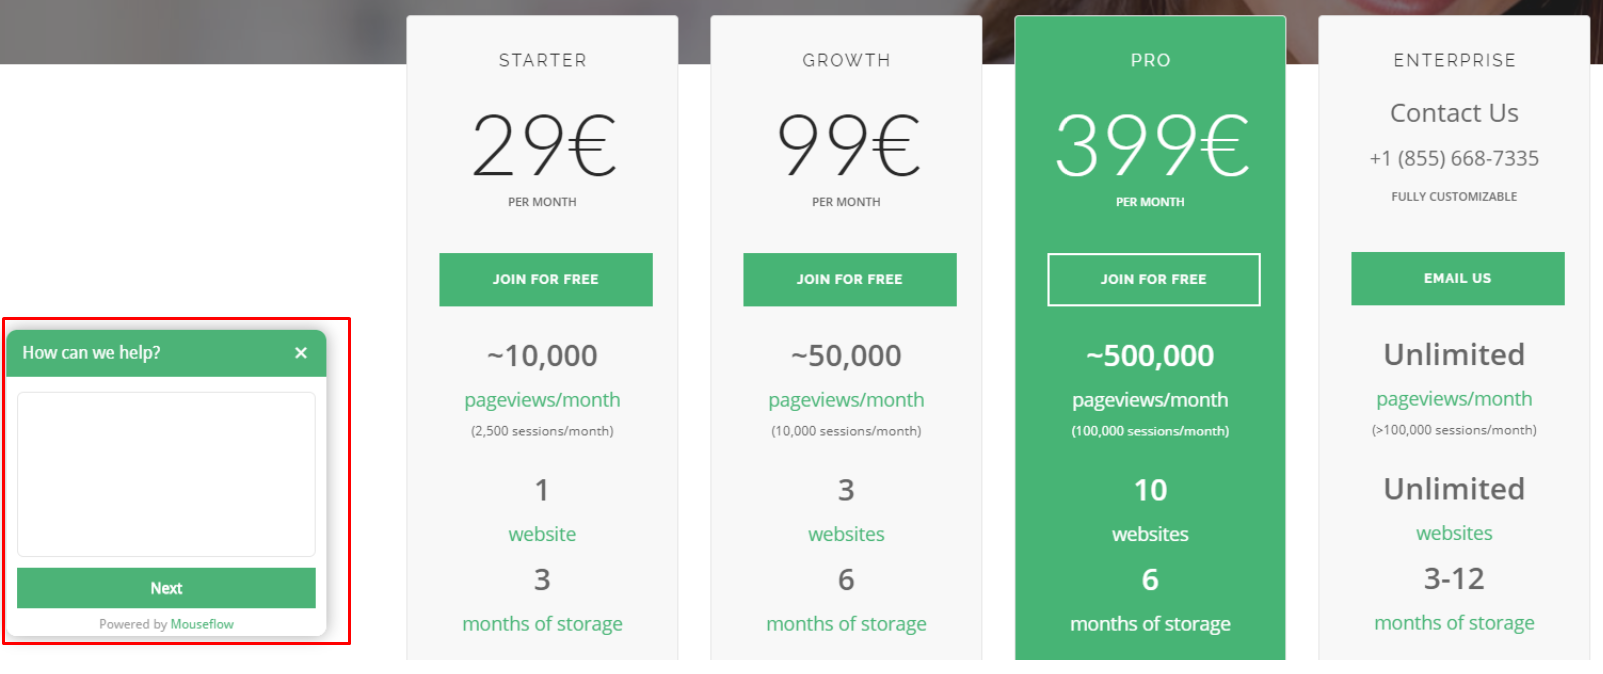 A survey on mouseflow's pricing page